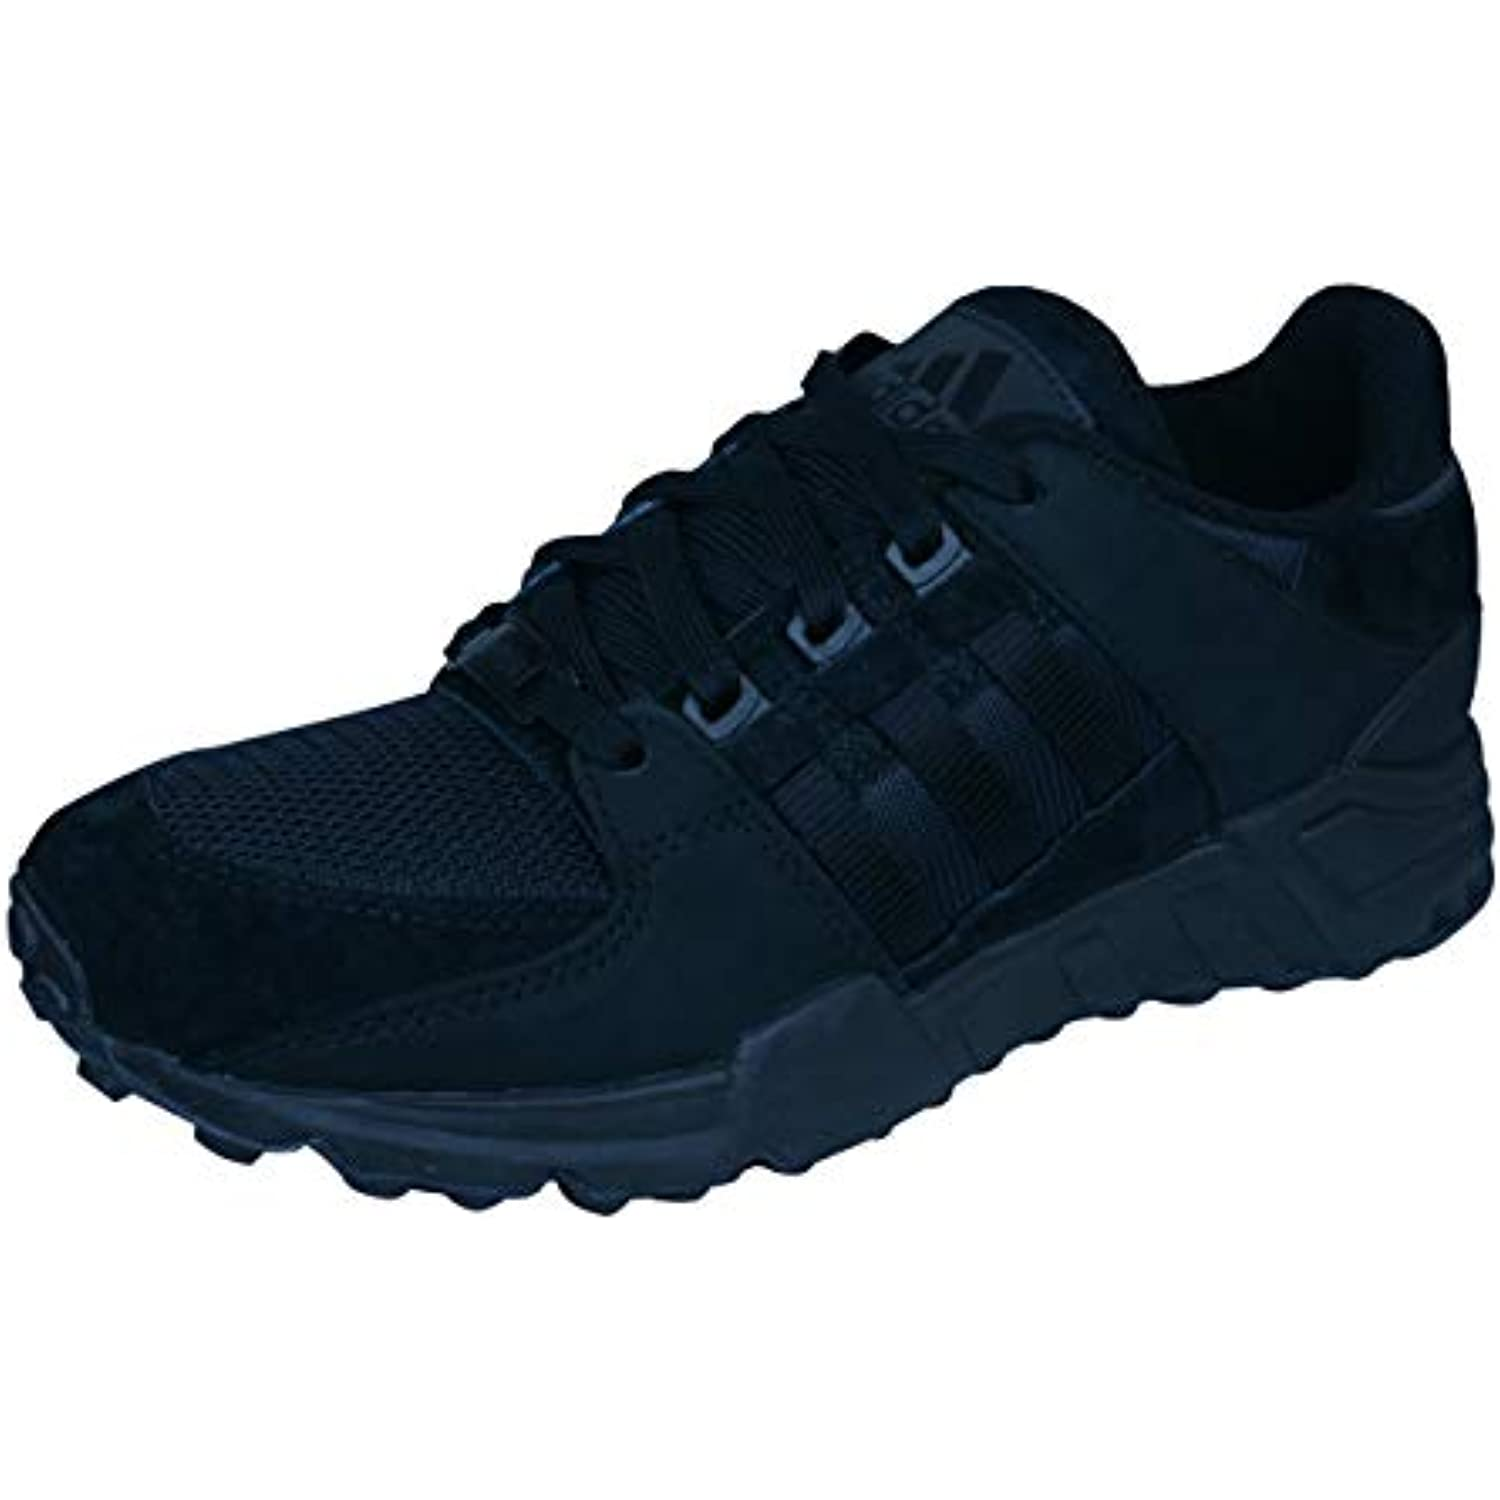 Adidas EquipHommest Running Support Support Support Vintage Blanc Vintage Blanc - B01GQBK1TG - d70e4e